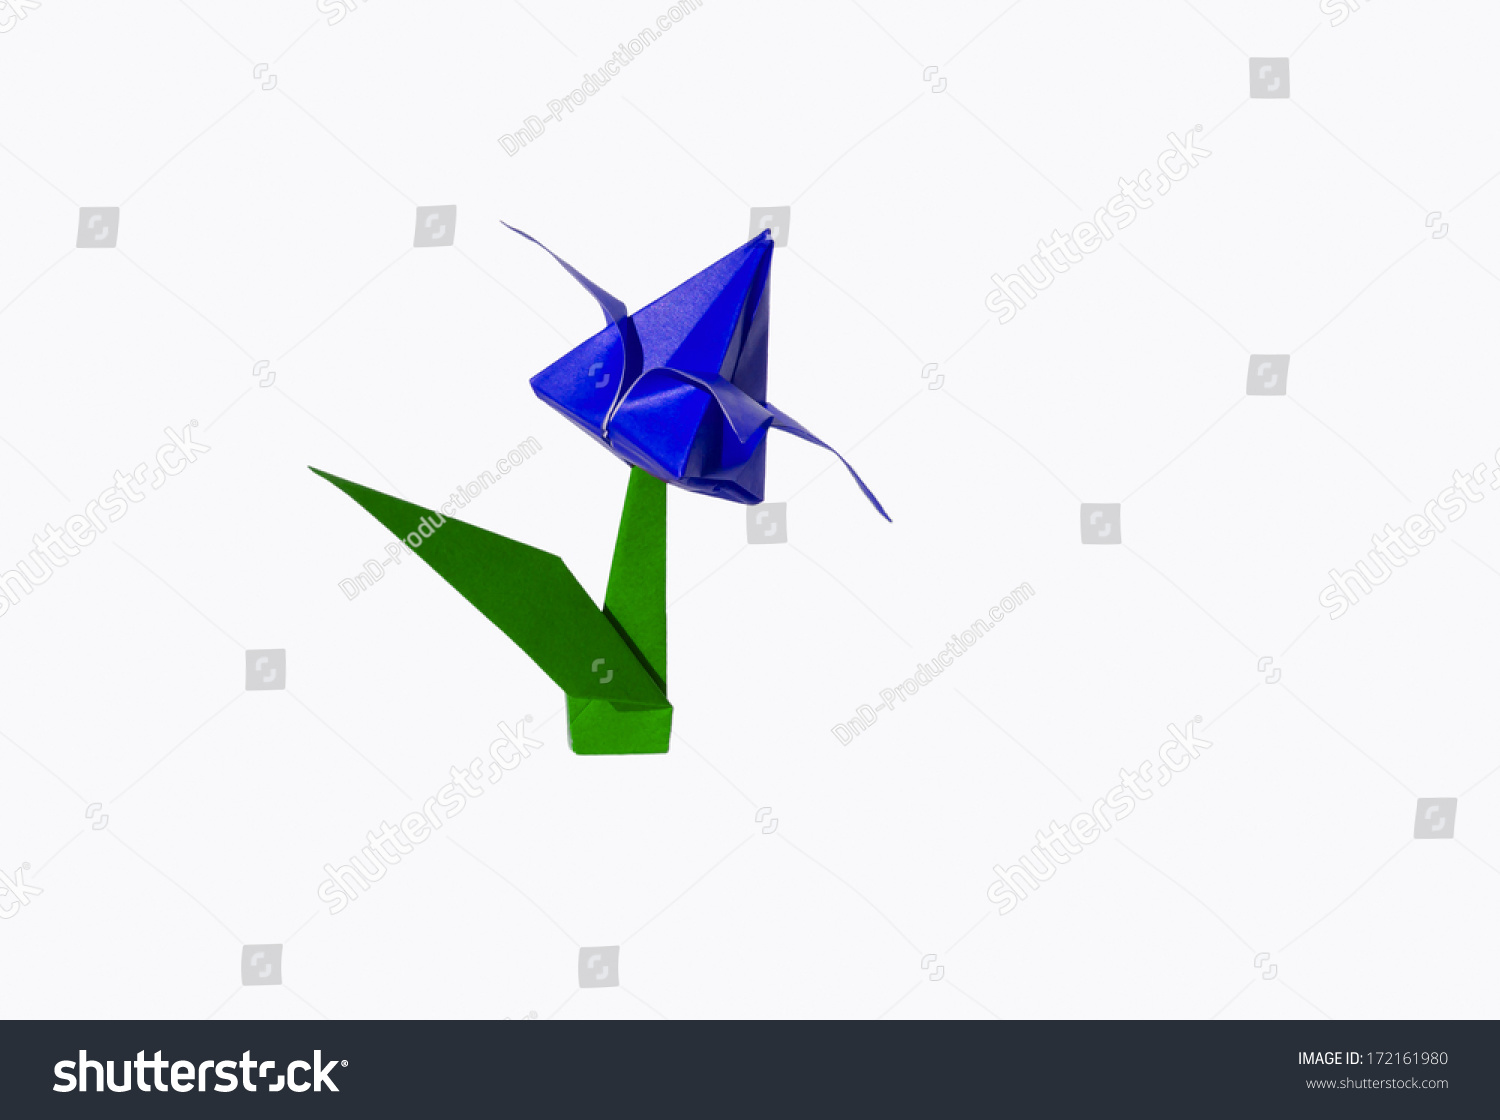 Origami blue flower tulip isolated on stock photo royalty free origami blue flower tulip isolated on stock photo royalty free 172161980 shutterstock mightylinksfo